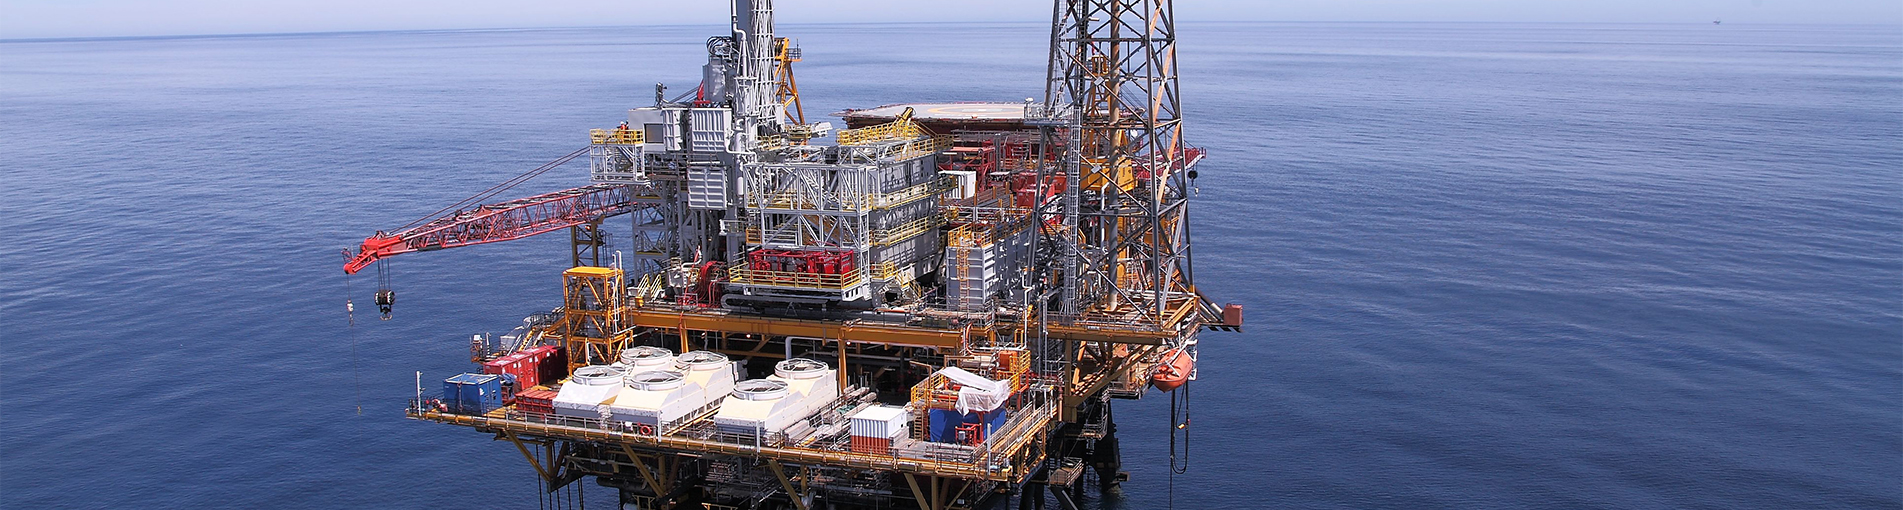 Offshore Drilling Rigs